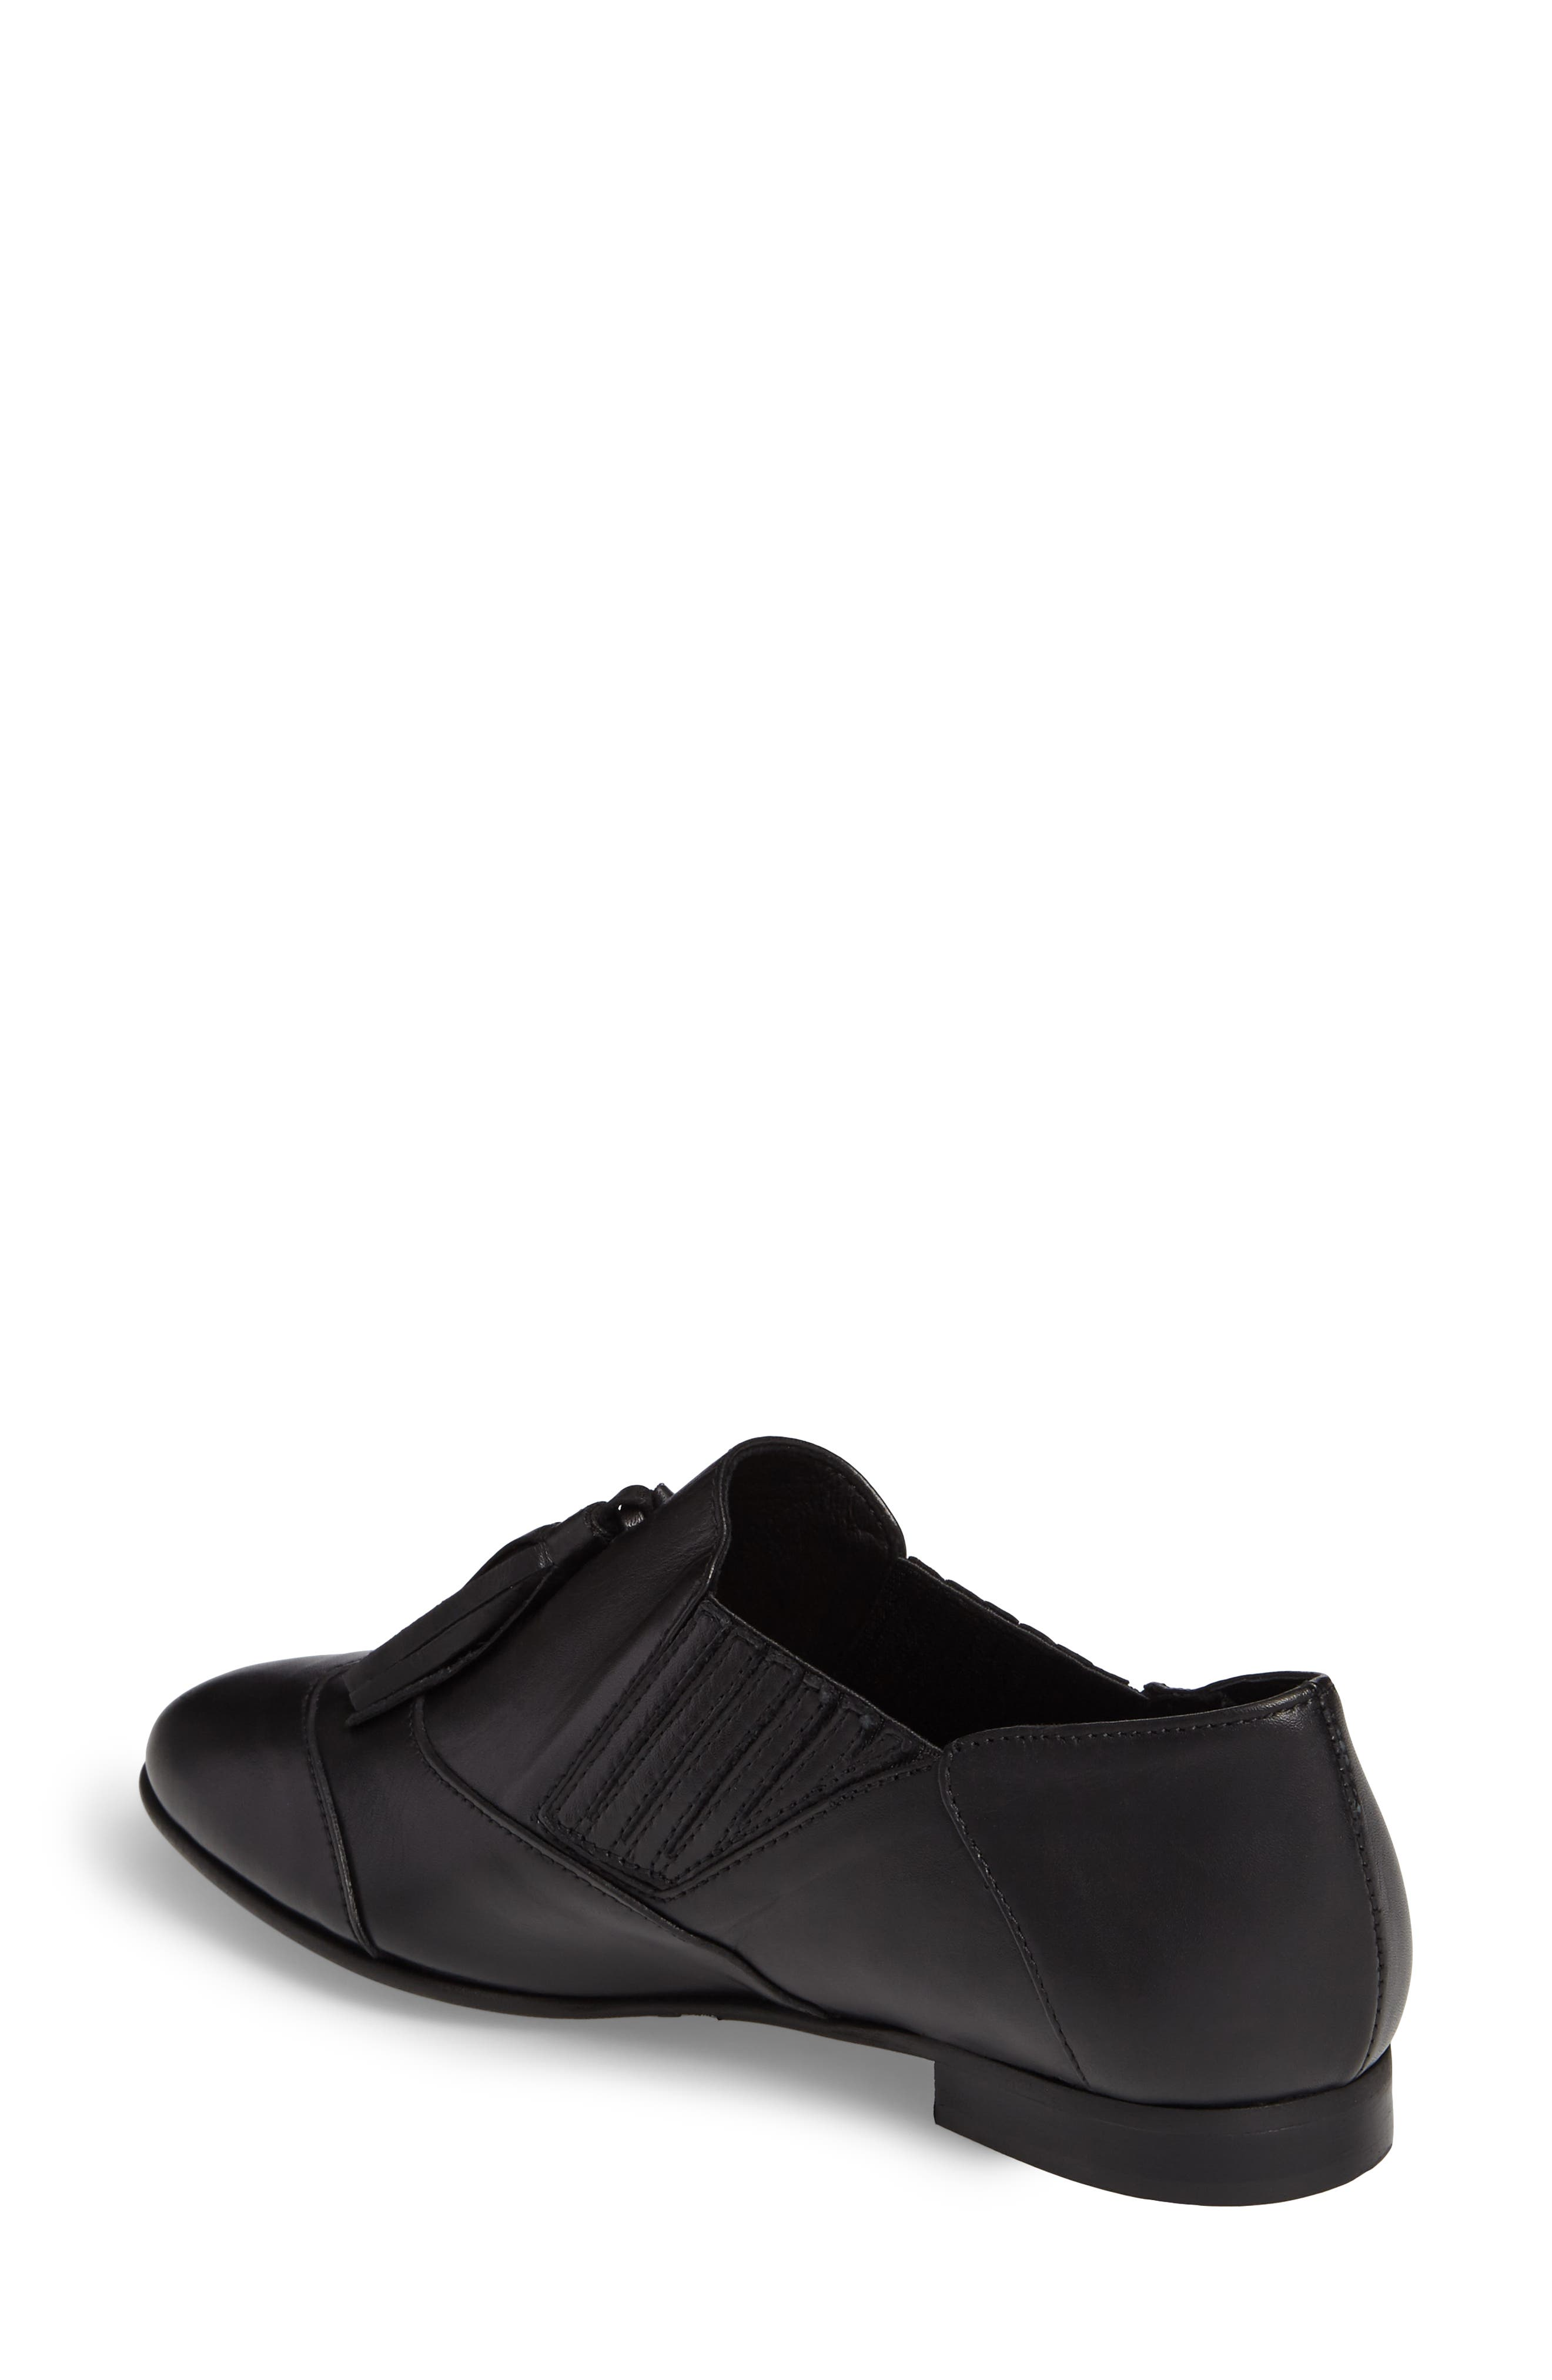 Alternate Image 2  - Charles David Oracle Tasseled Slip-On Flat (Women)